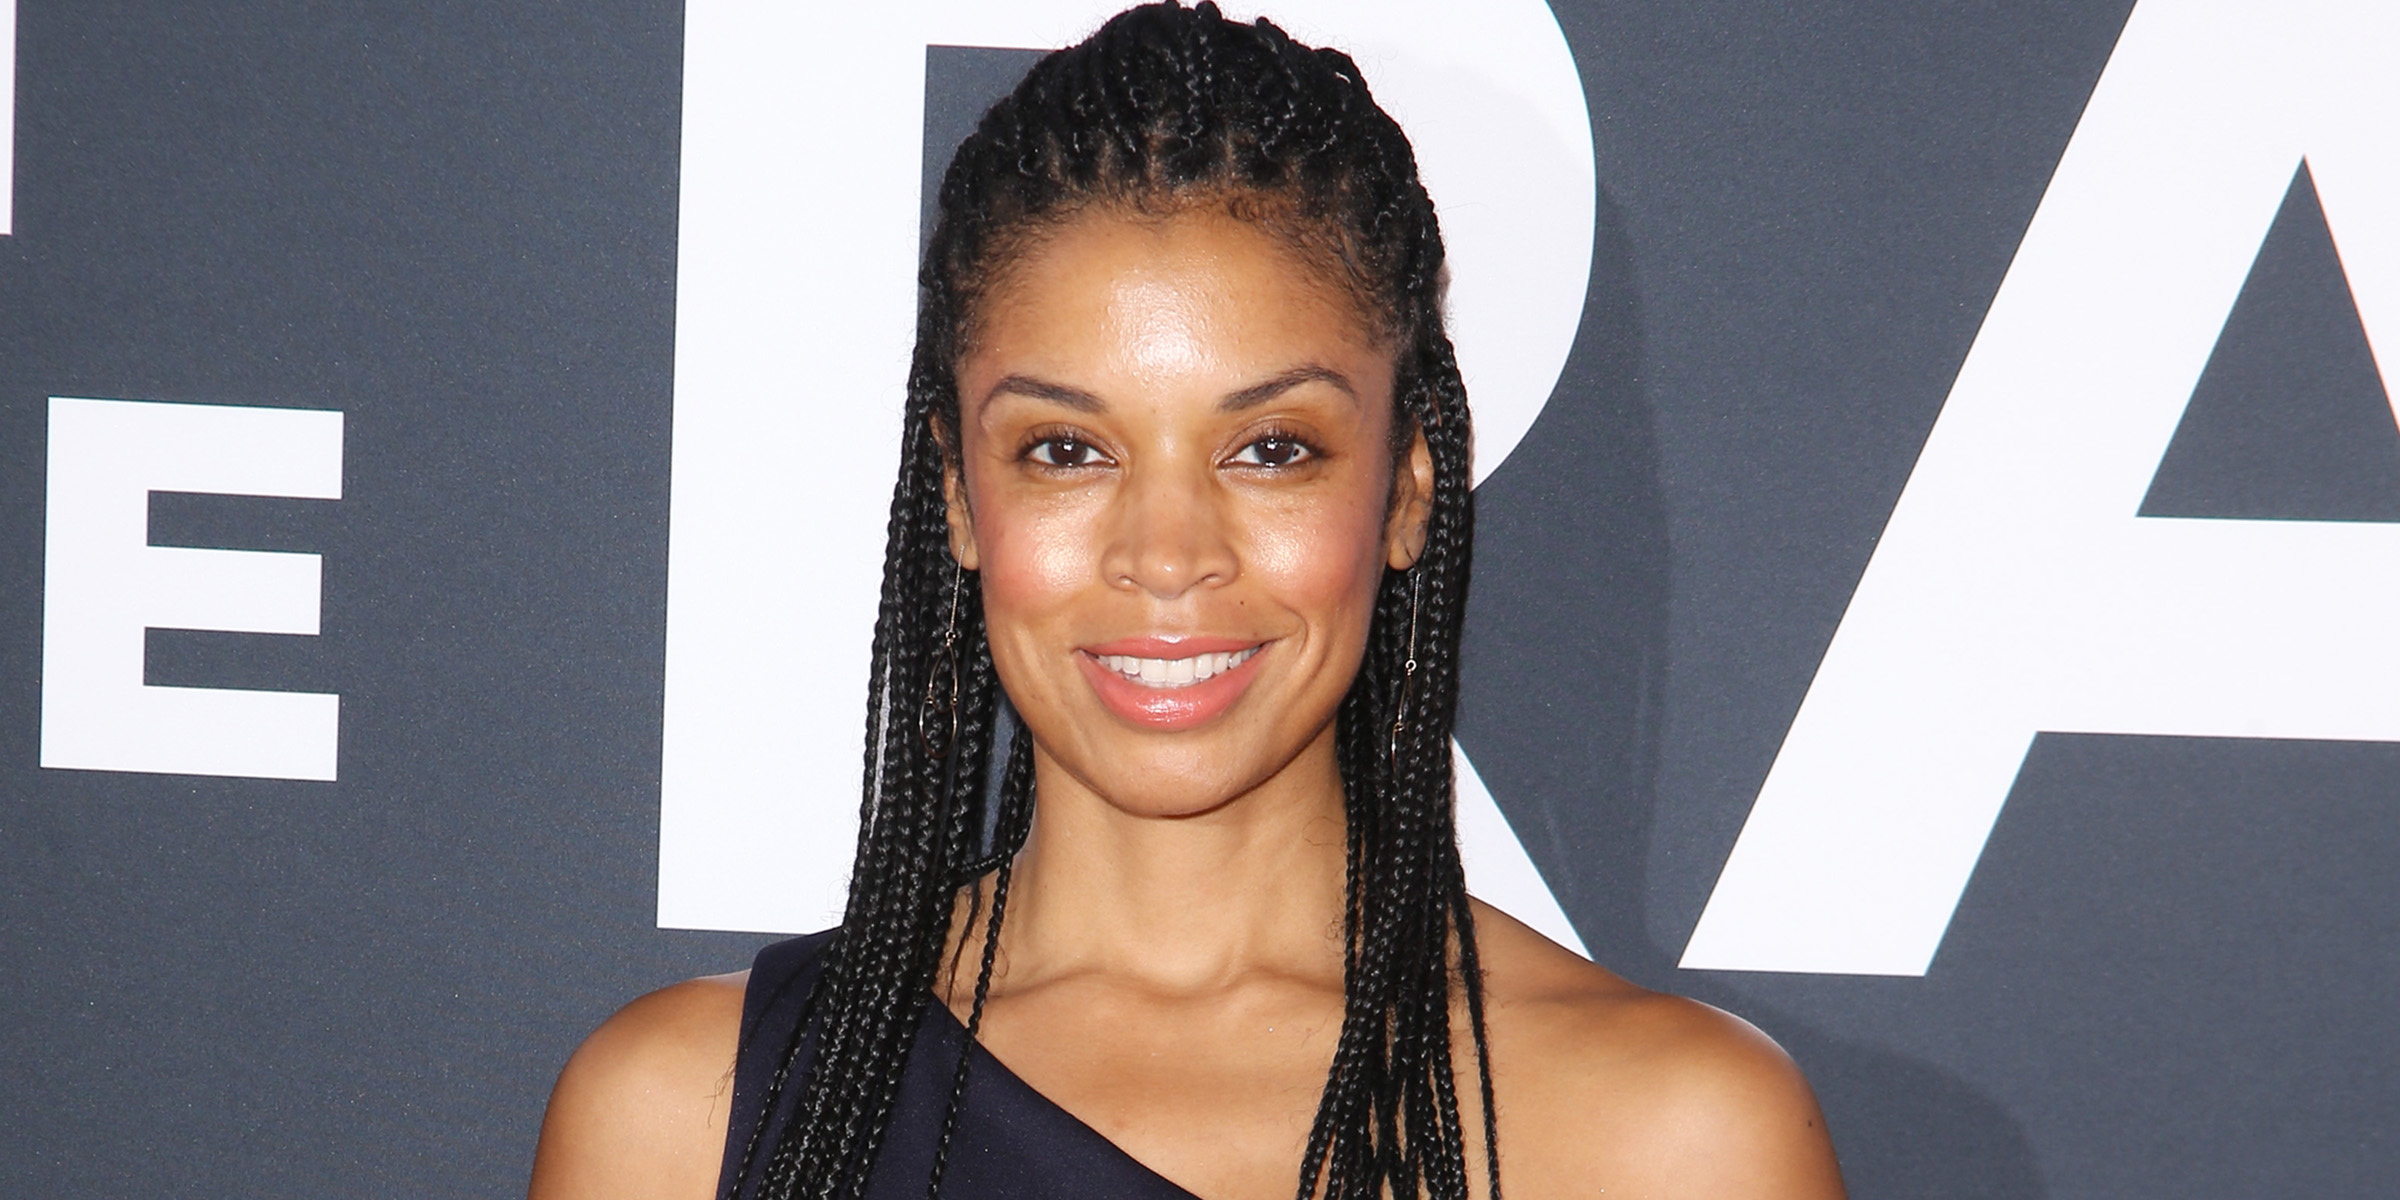 'This Is Us' star Susan Kelechi Watson is engaged